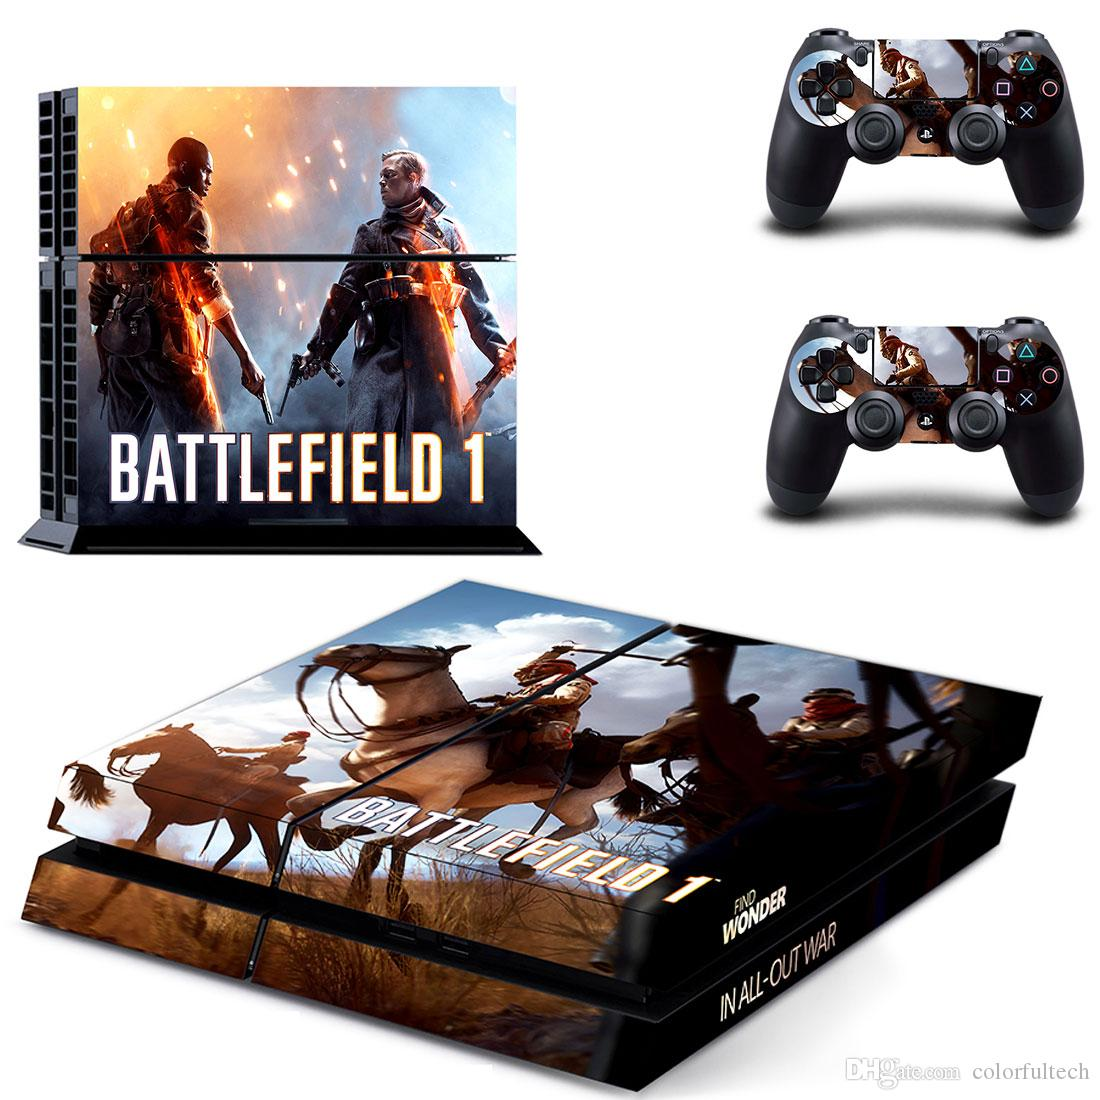 Ps4 Custom Battlefield 1 Vinyl Skin Cover Decals For Sony Game Playstation 4 Console And Controllersgytm0611 Video Stickers